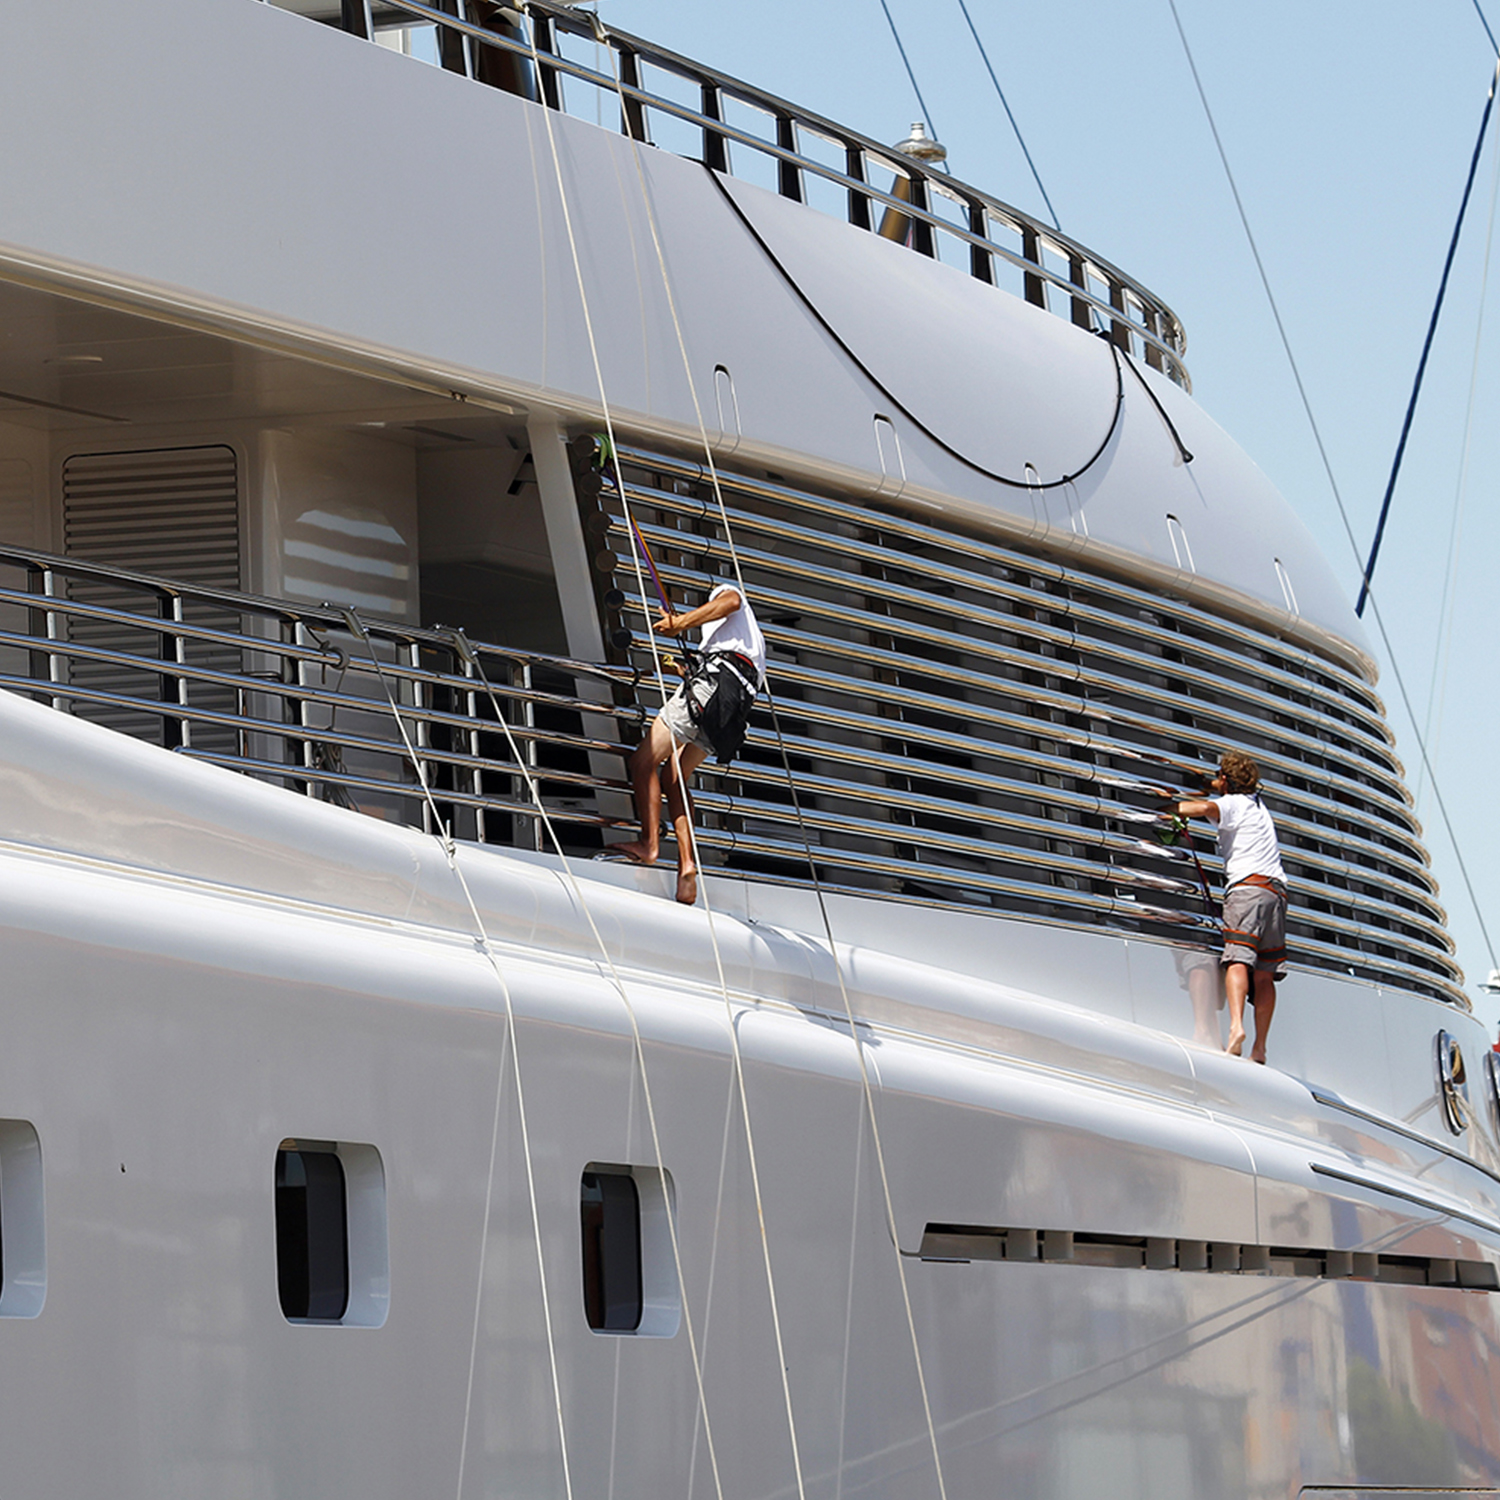 Supreme Marine VIP image superyacht crew with safety harnesses